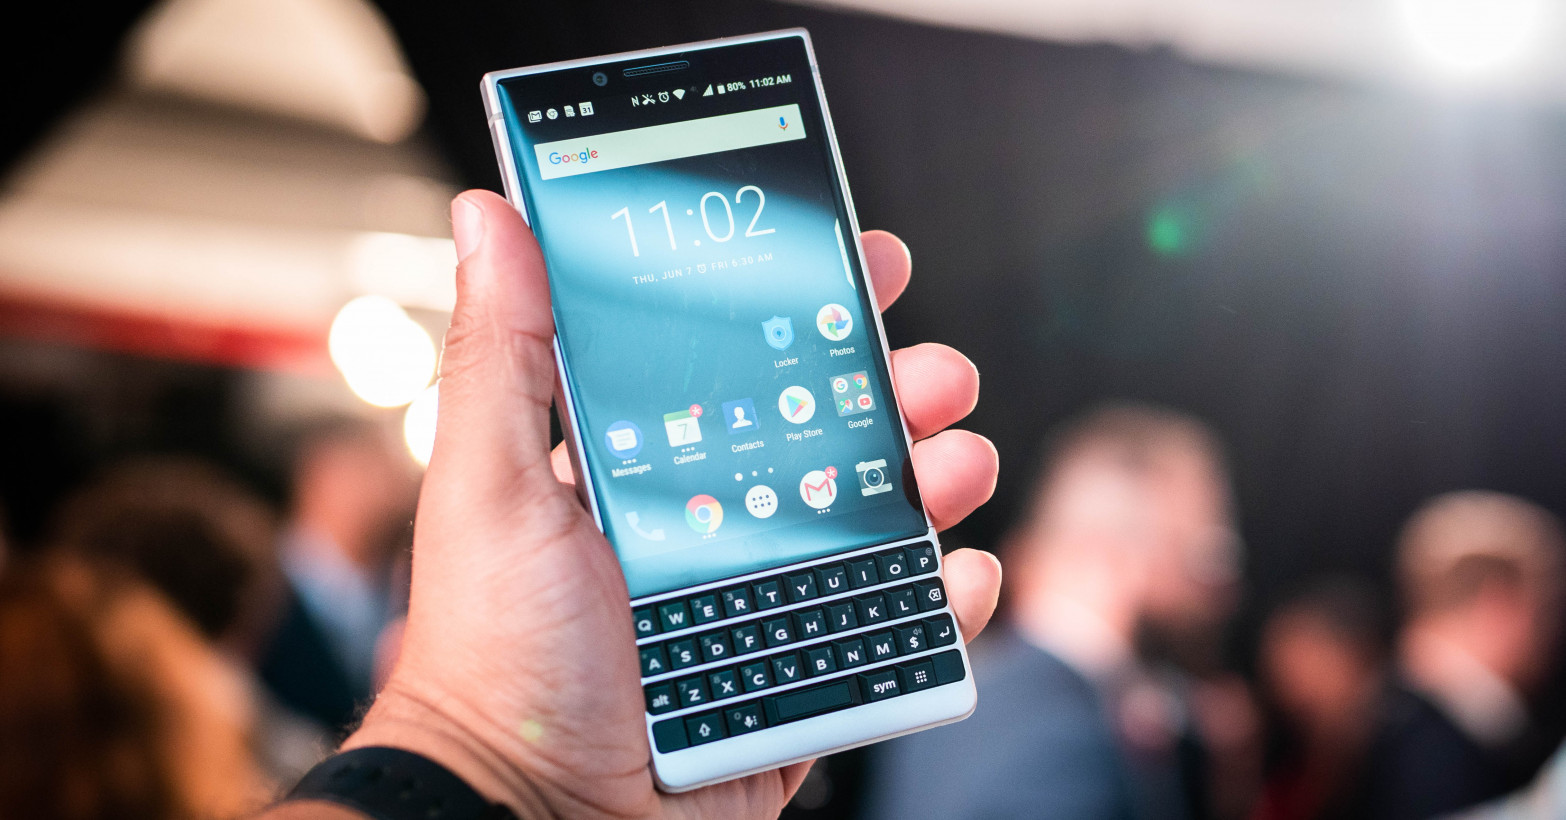 Hands-on: The BlackBerry Key2 has me unreasonably excited